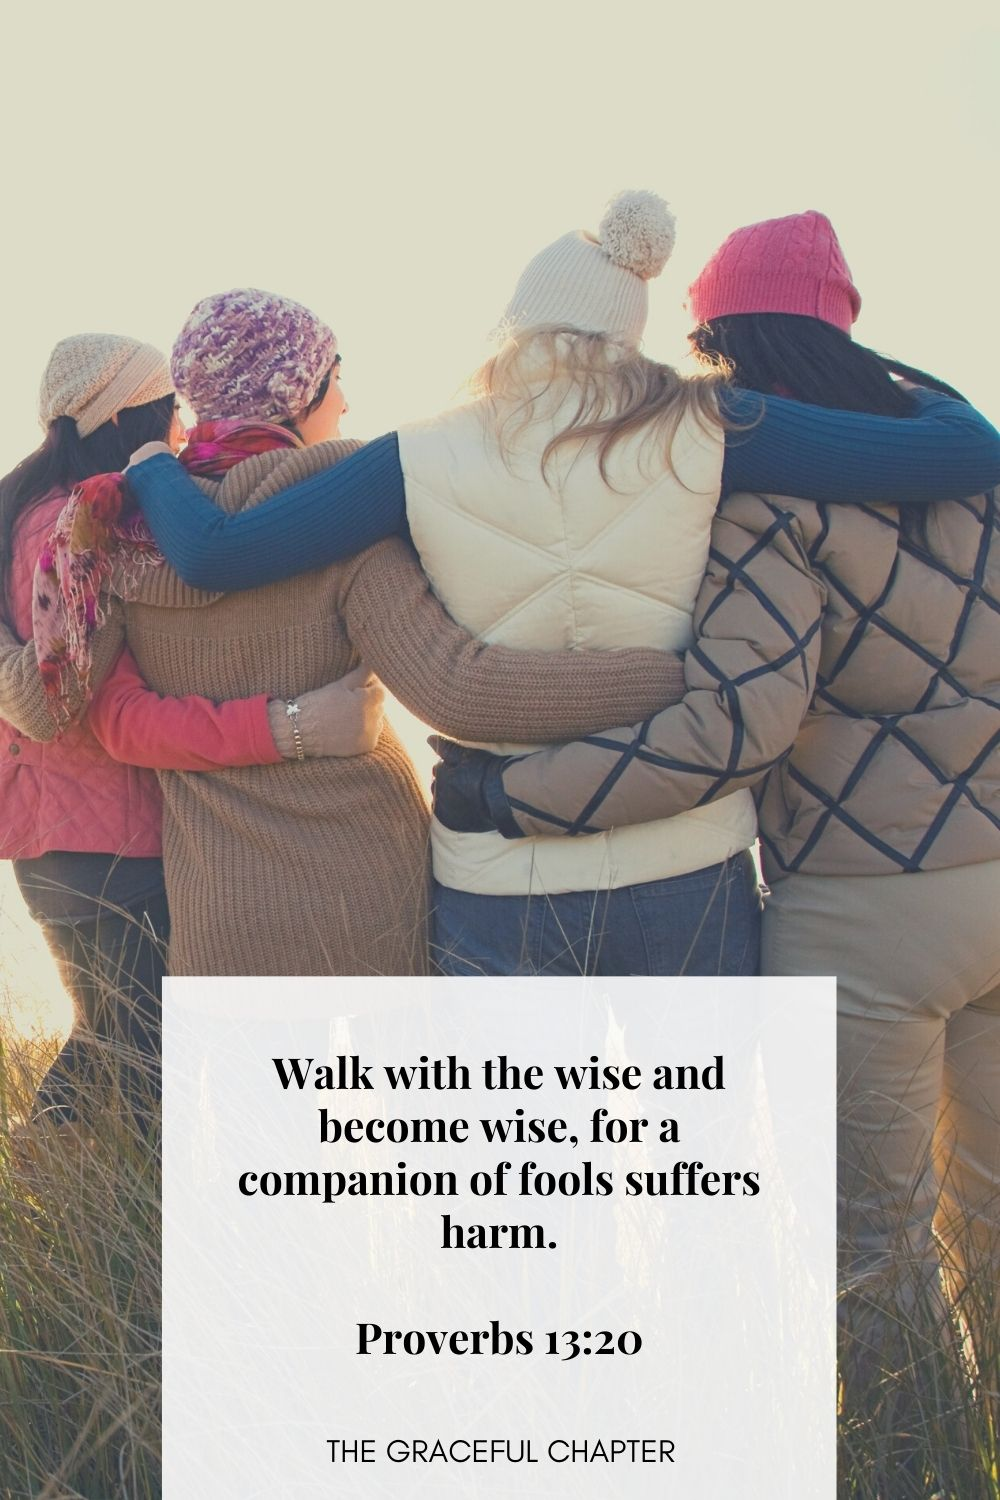 Walk with the wise and become wise, for a companion of fools suffers harm. Proverbs 13:20